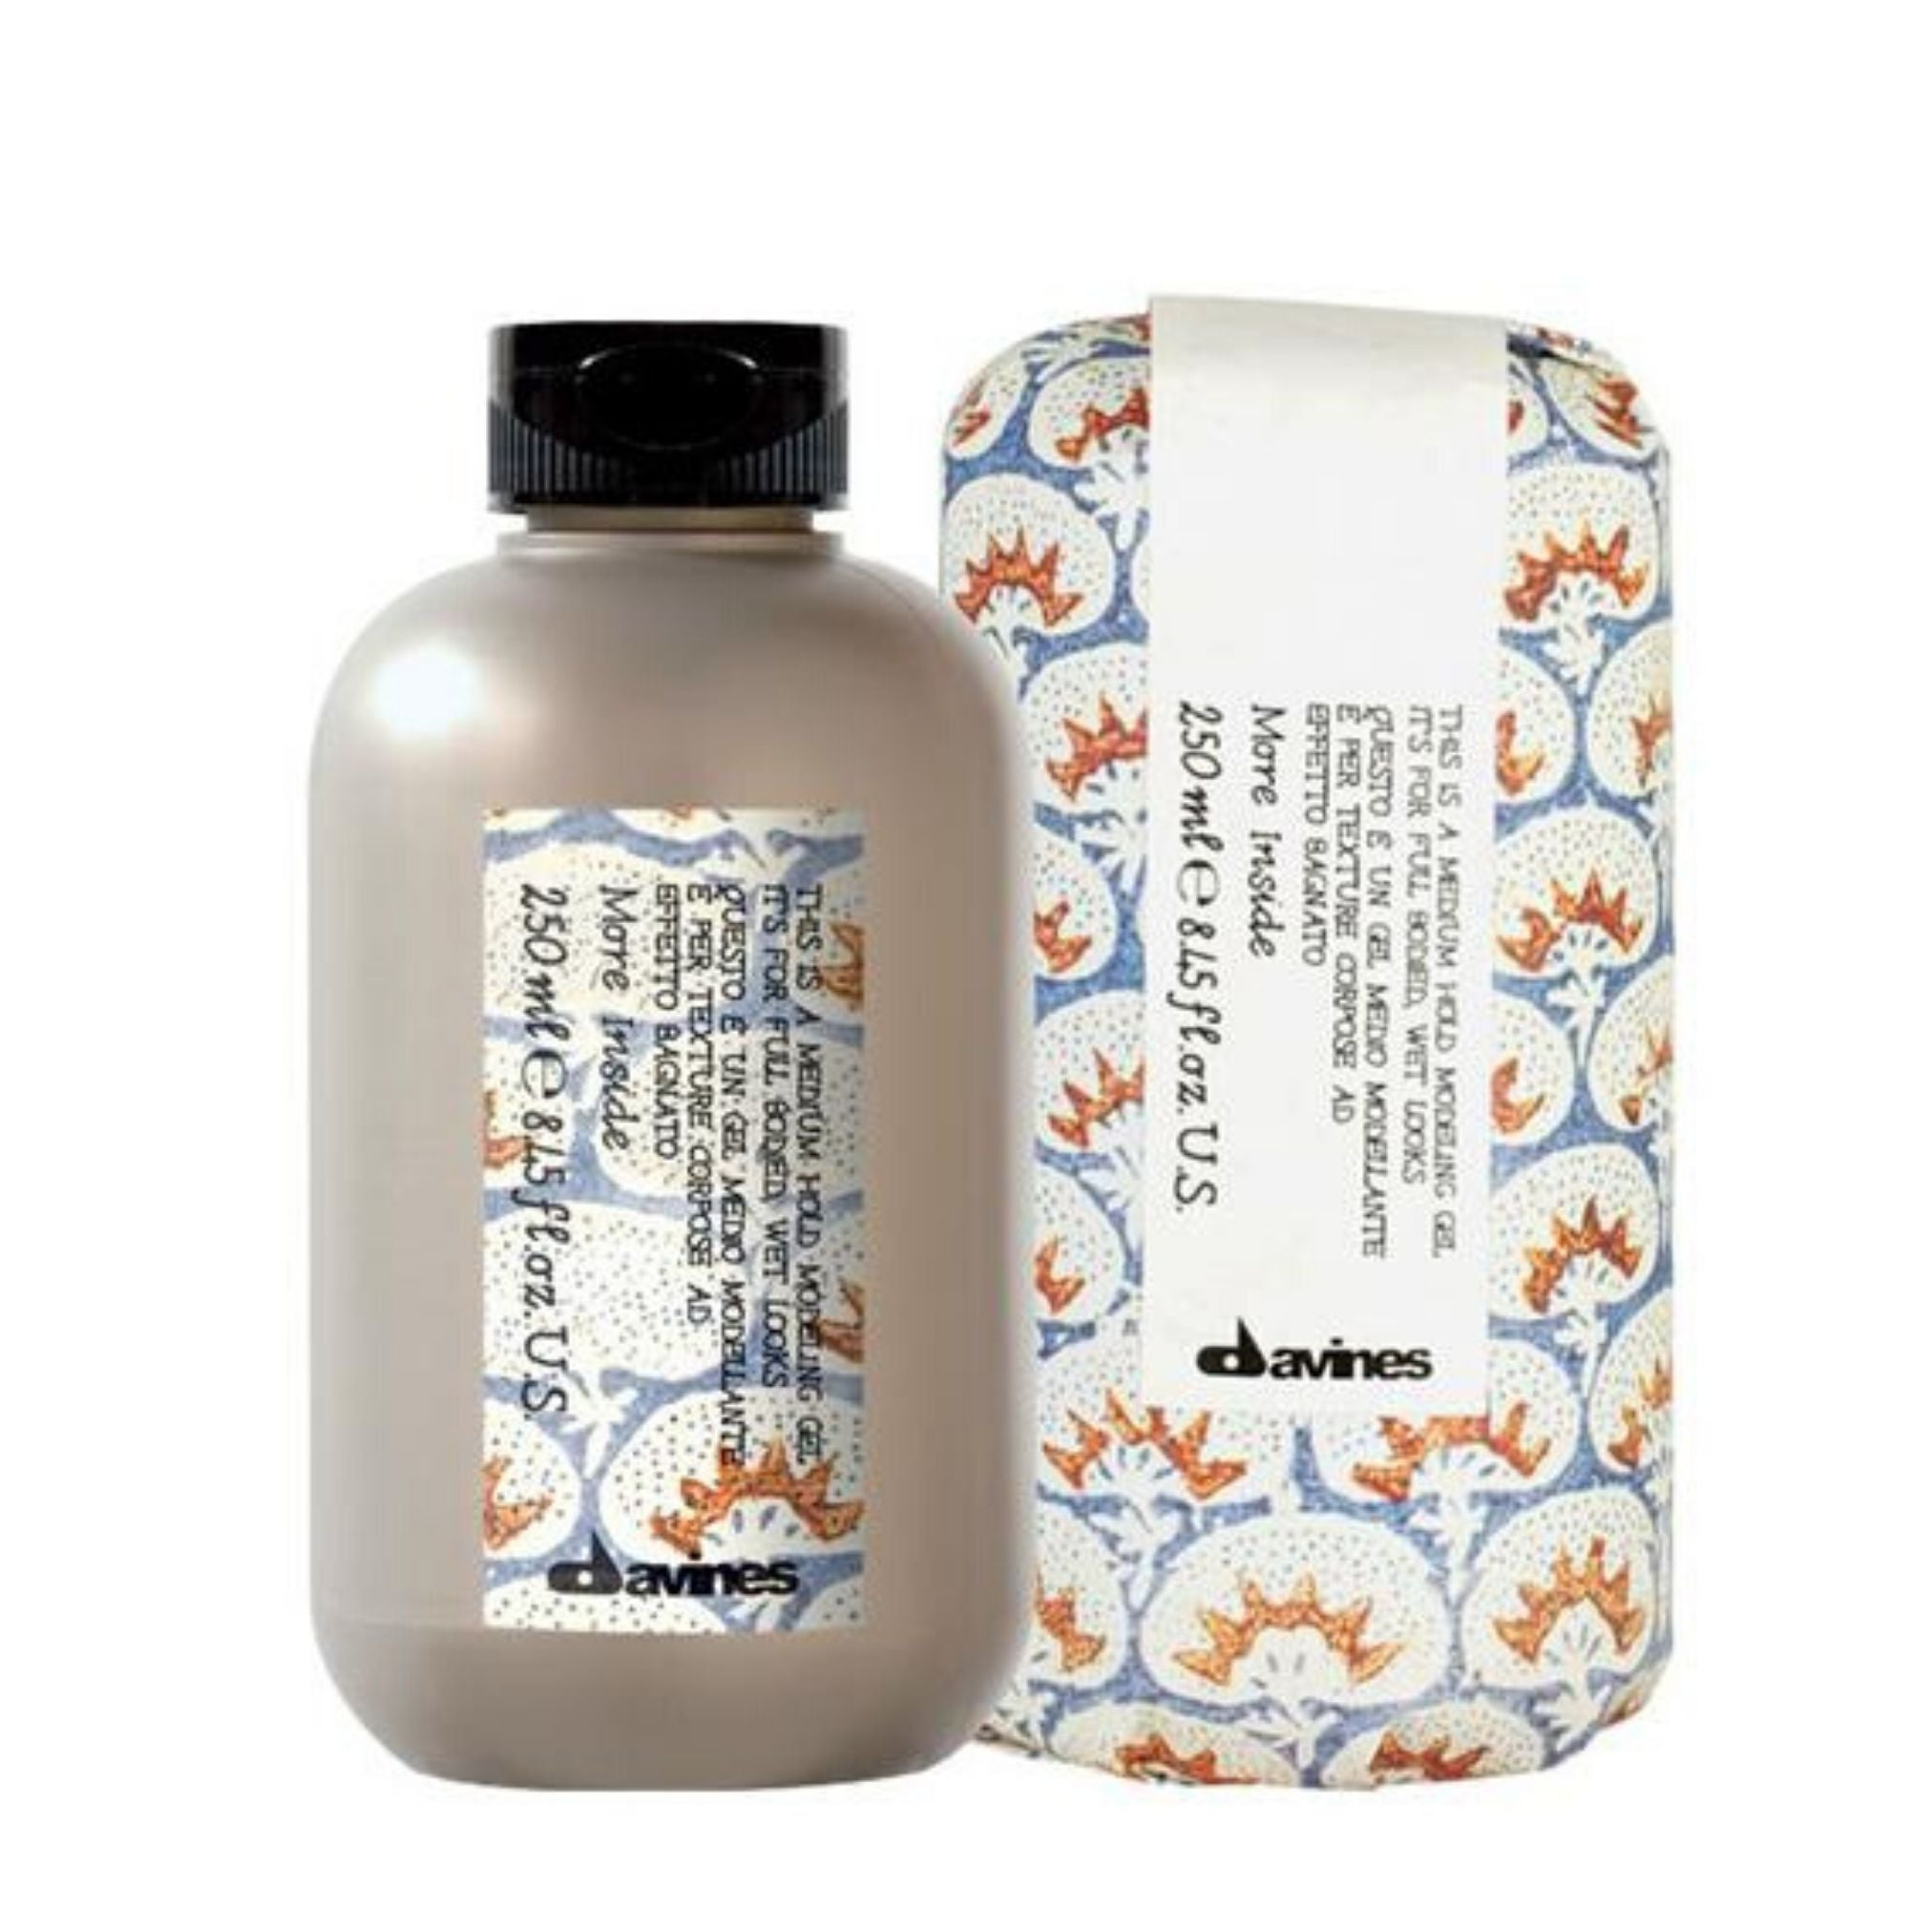 Davines Modeling Gel 250ml